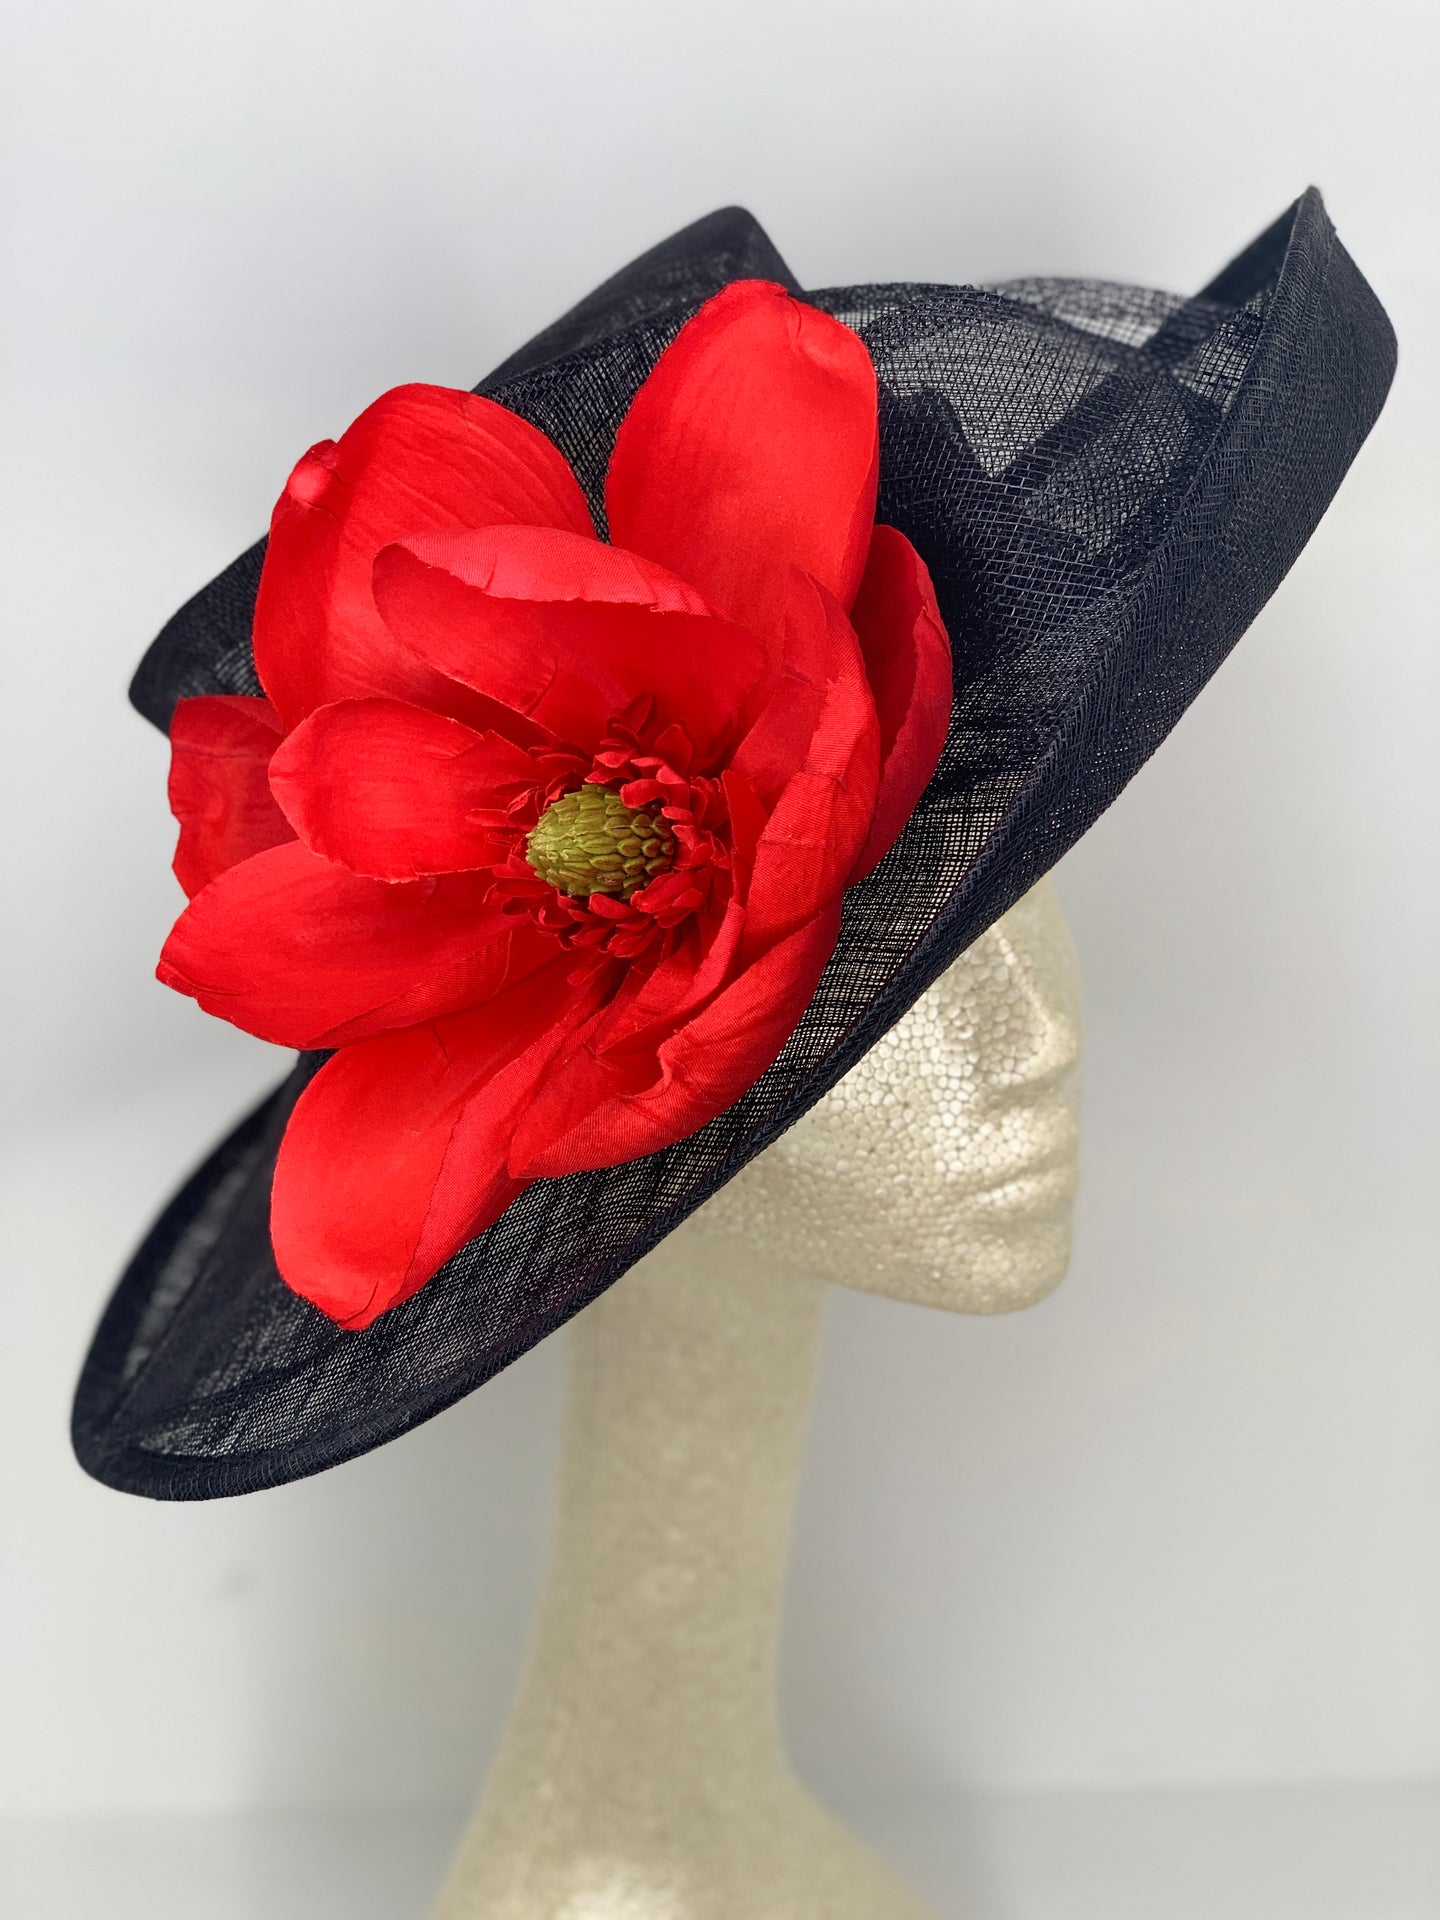 RED MAGNOLIA ON BLACK HAT